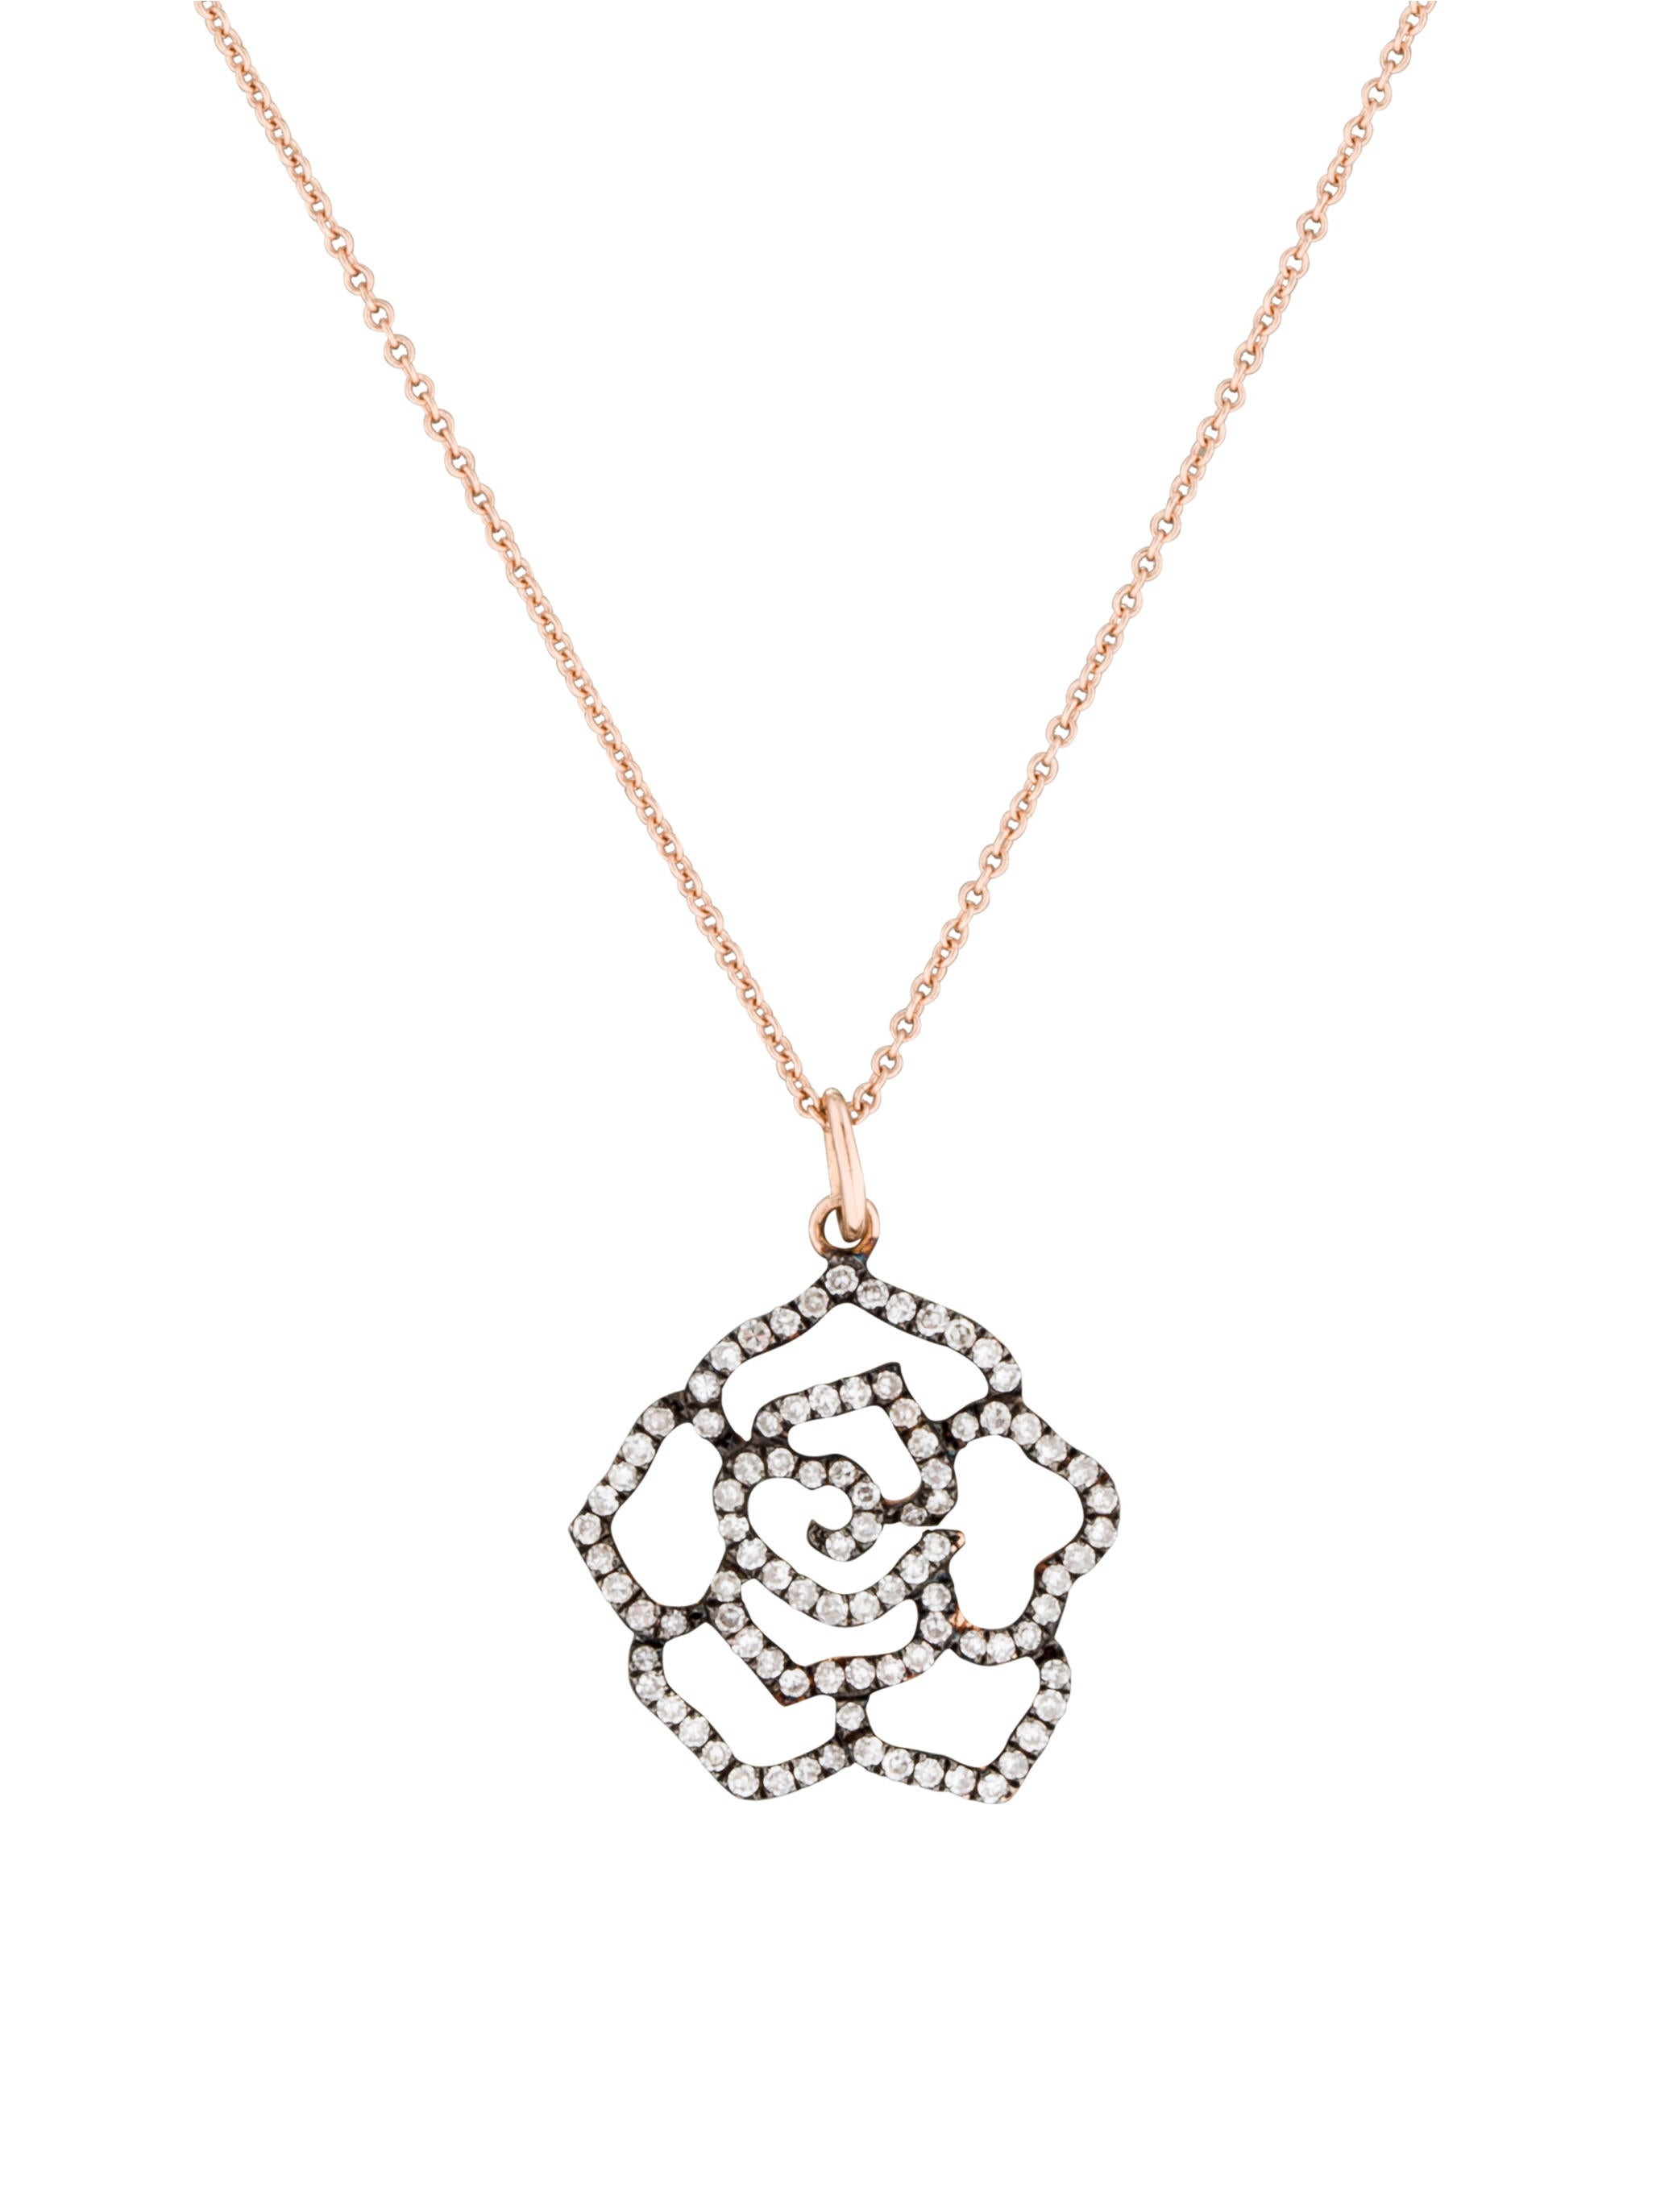 14k Diamond Flower Necklace Necklaces Fjn24334 The